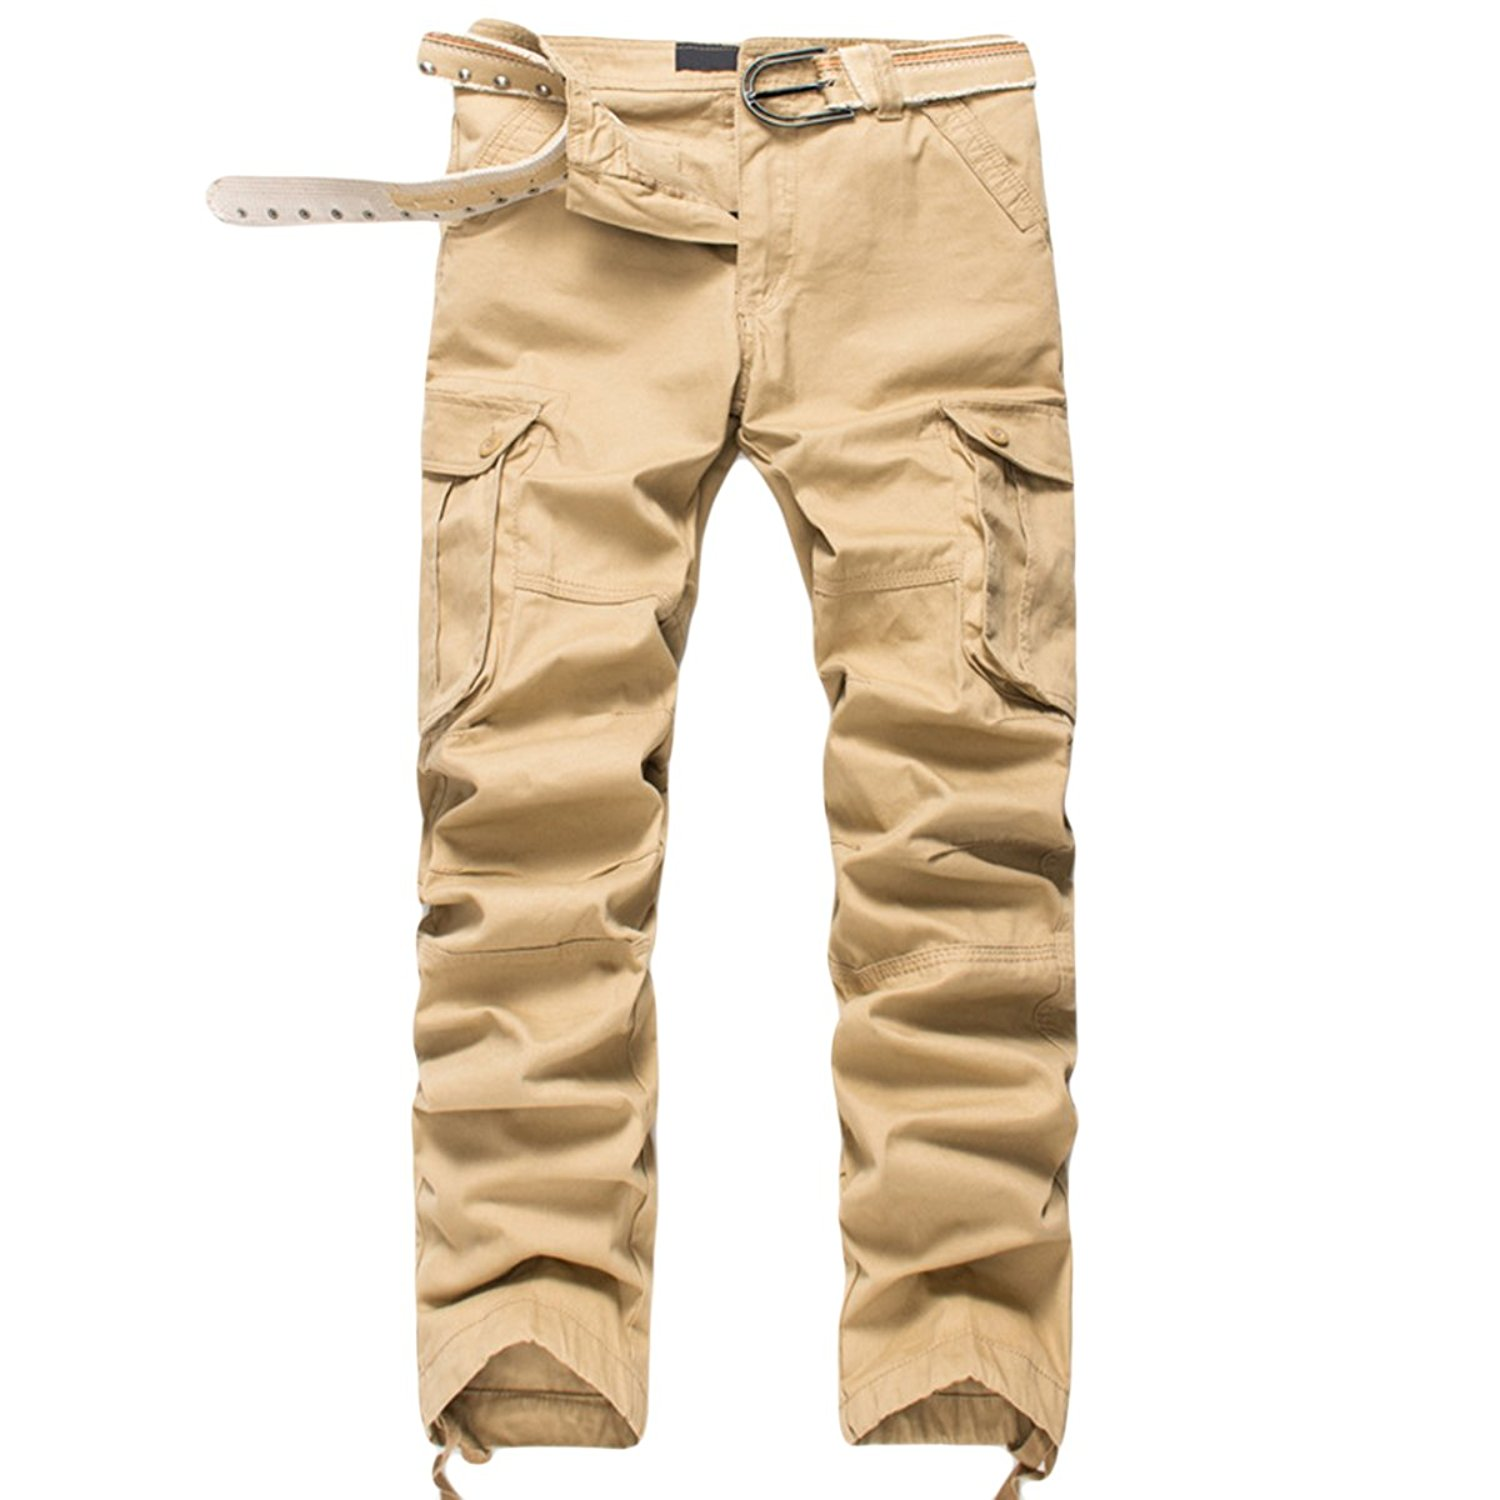 d97f2eeae5a Get Quotations · Pishon Men's Cargo Pants Cotton Wild Army Military Utility  Outdoor Casual Work Pants